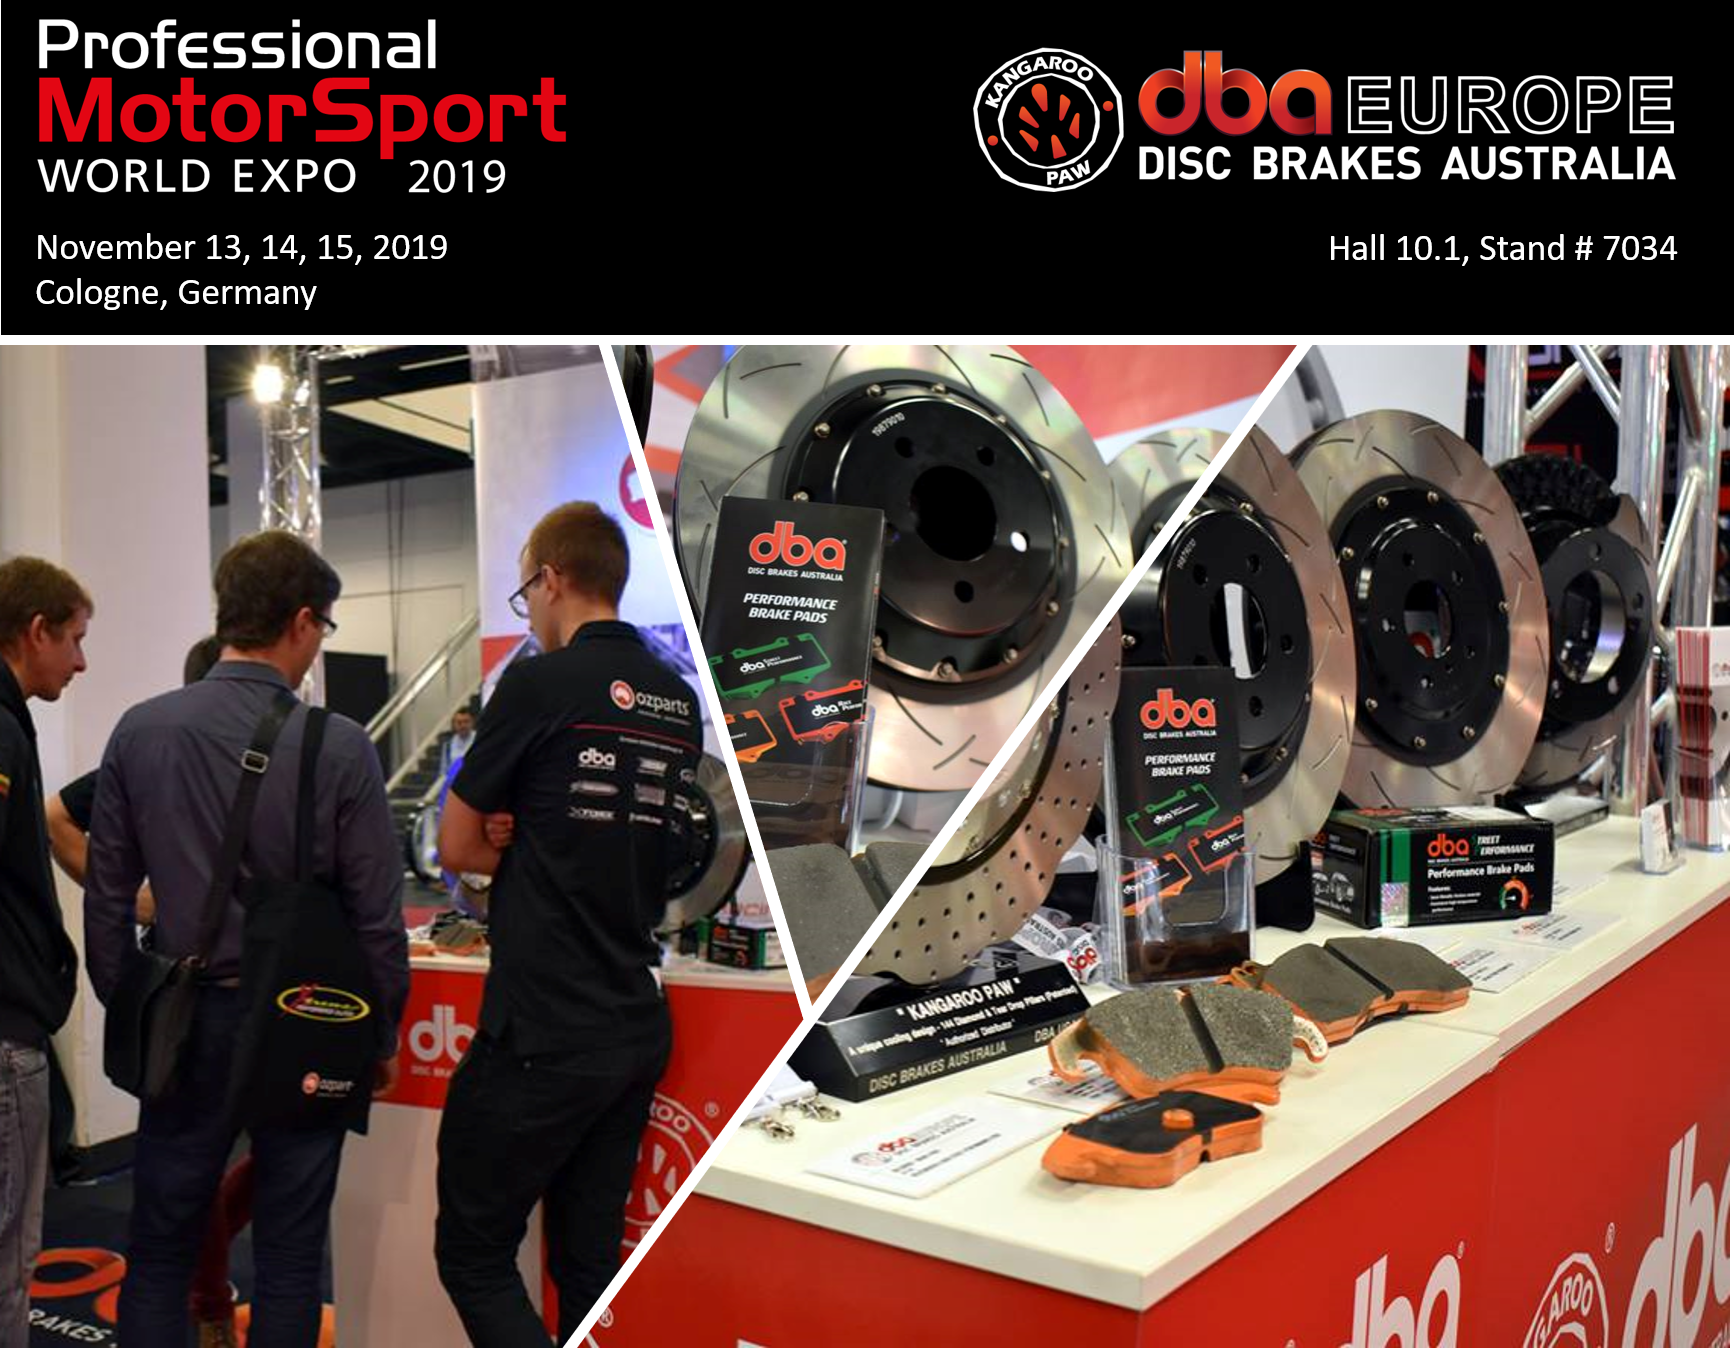 DBA at Professional MotorSport World Expo 2019